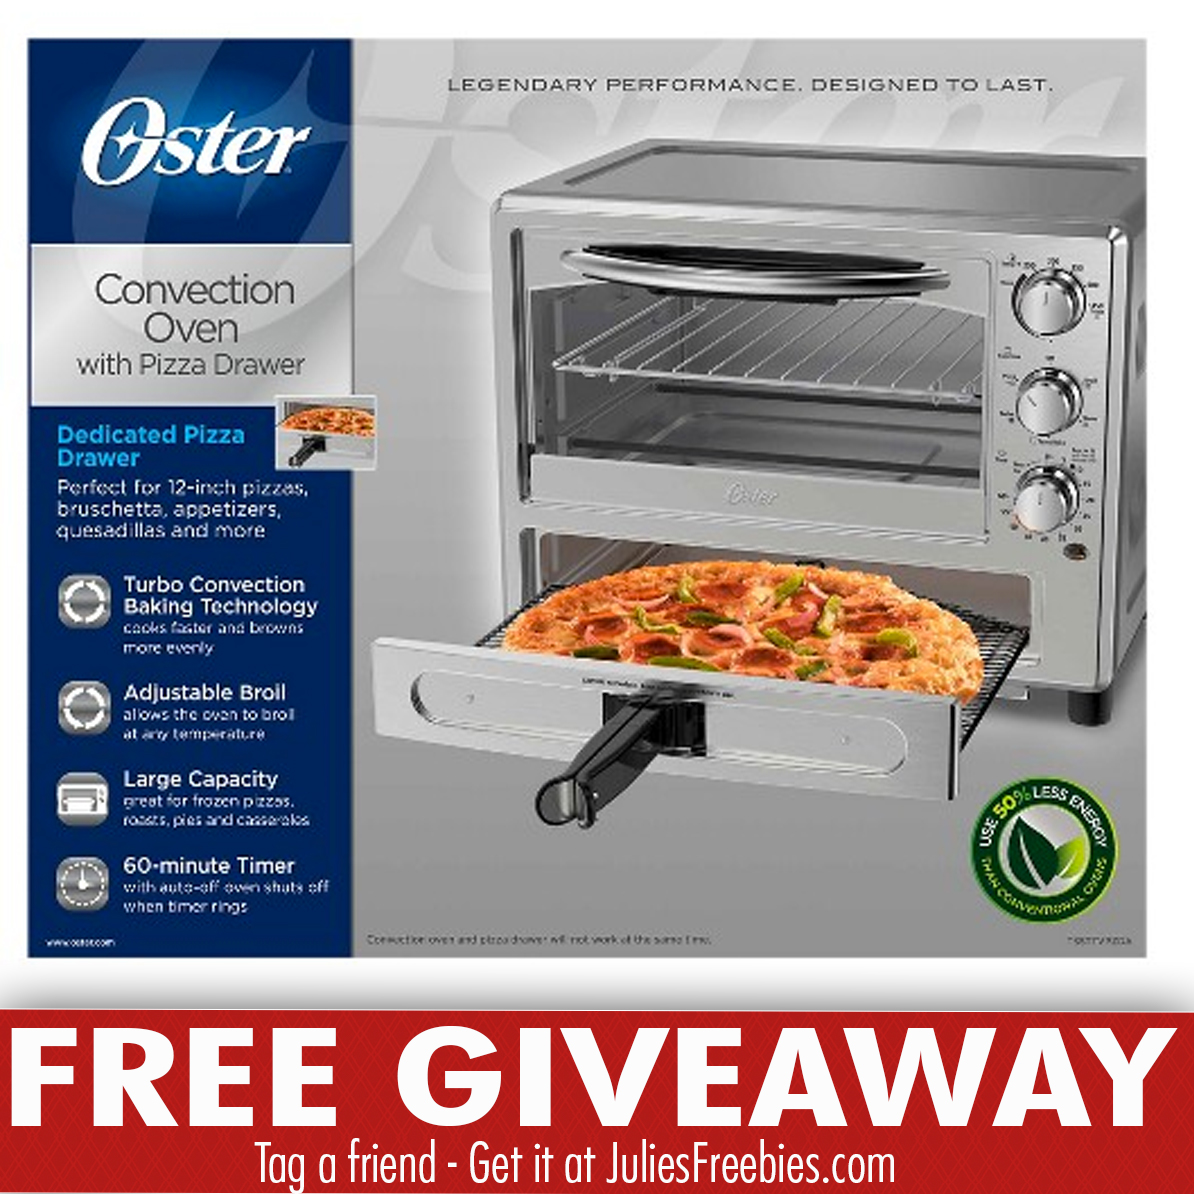 Win A Oster Convection Oven With Dedicated Pizza Drawer